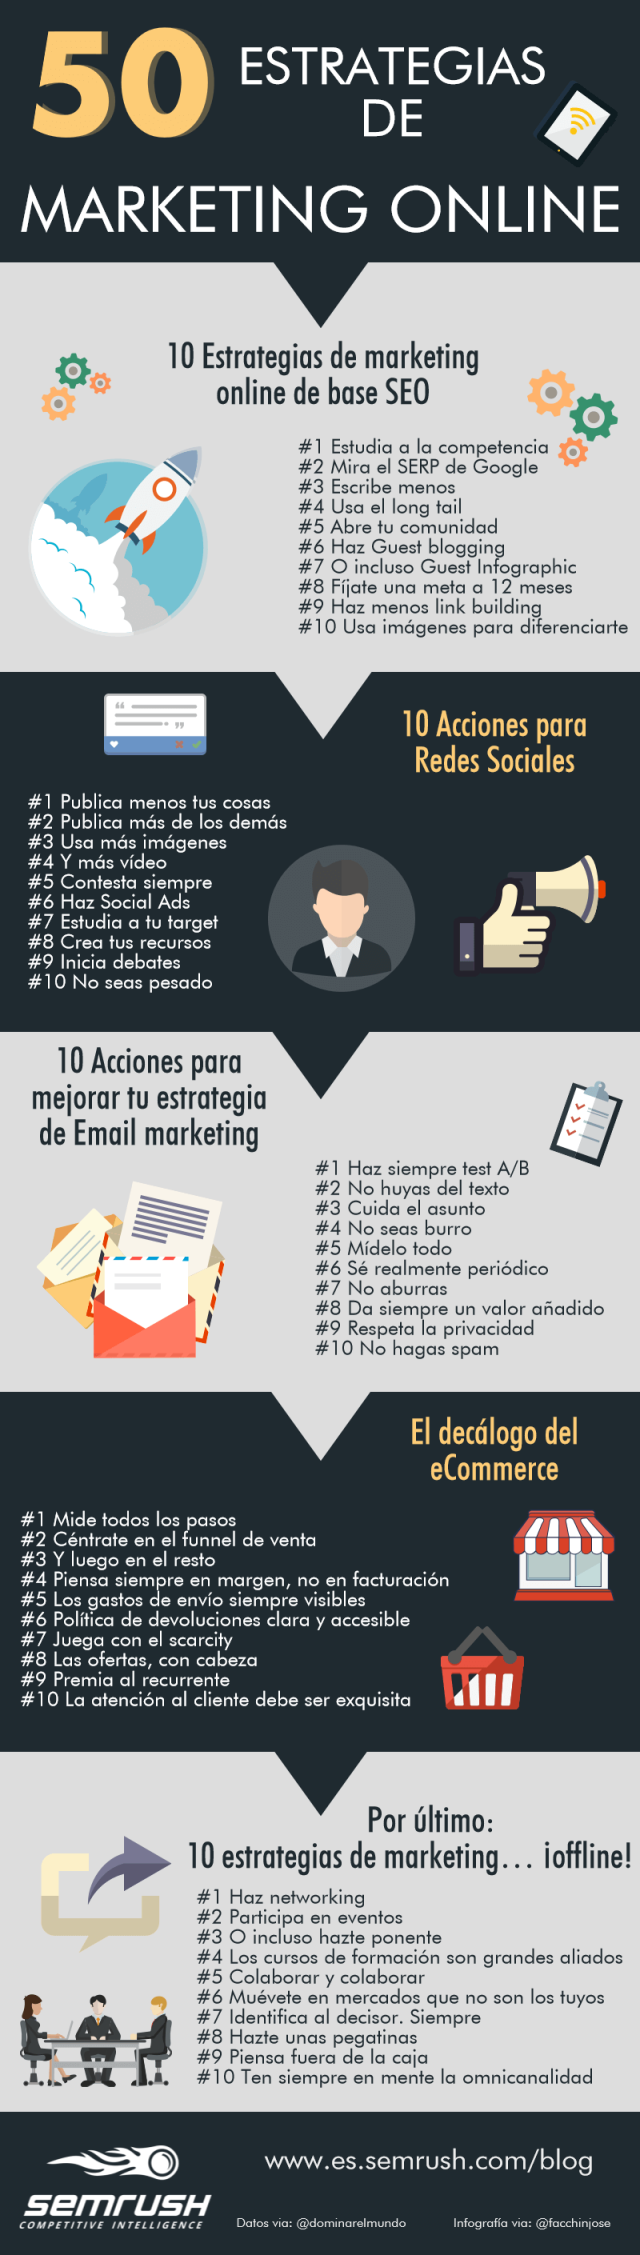 50 estrategias de Marketing on Line